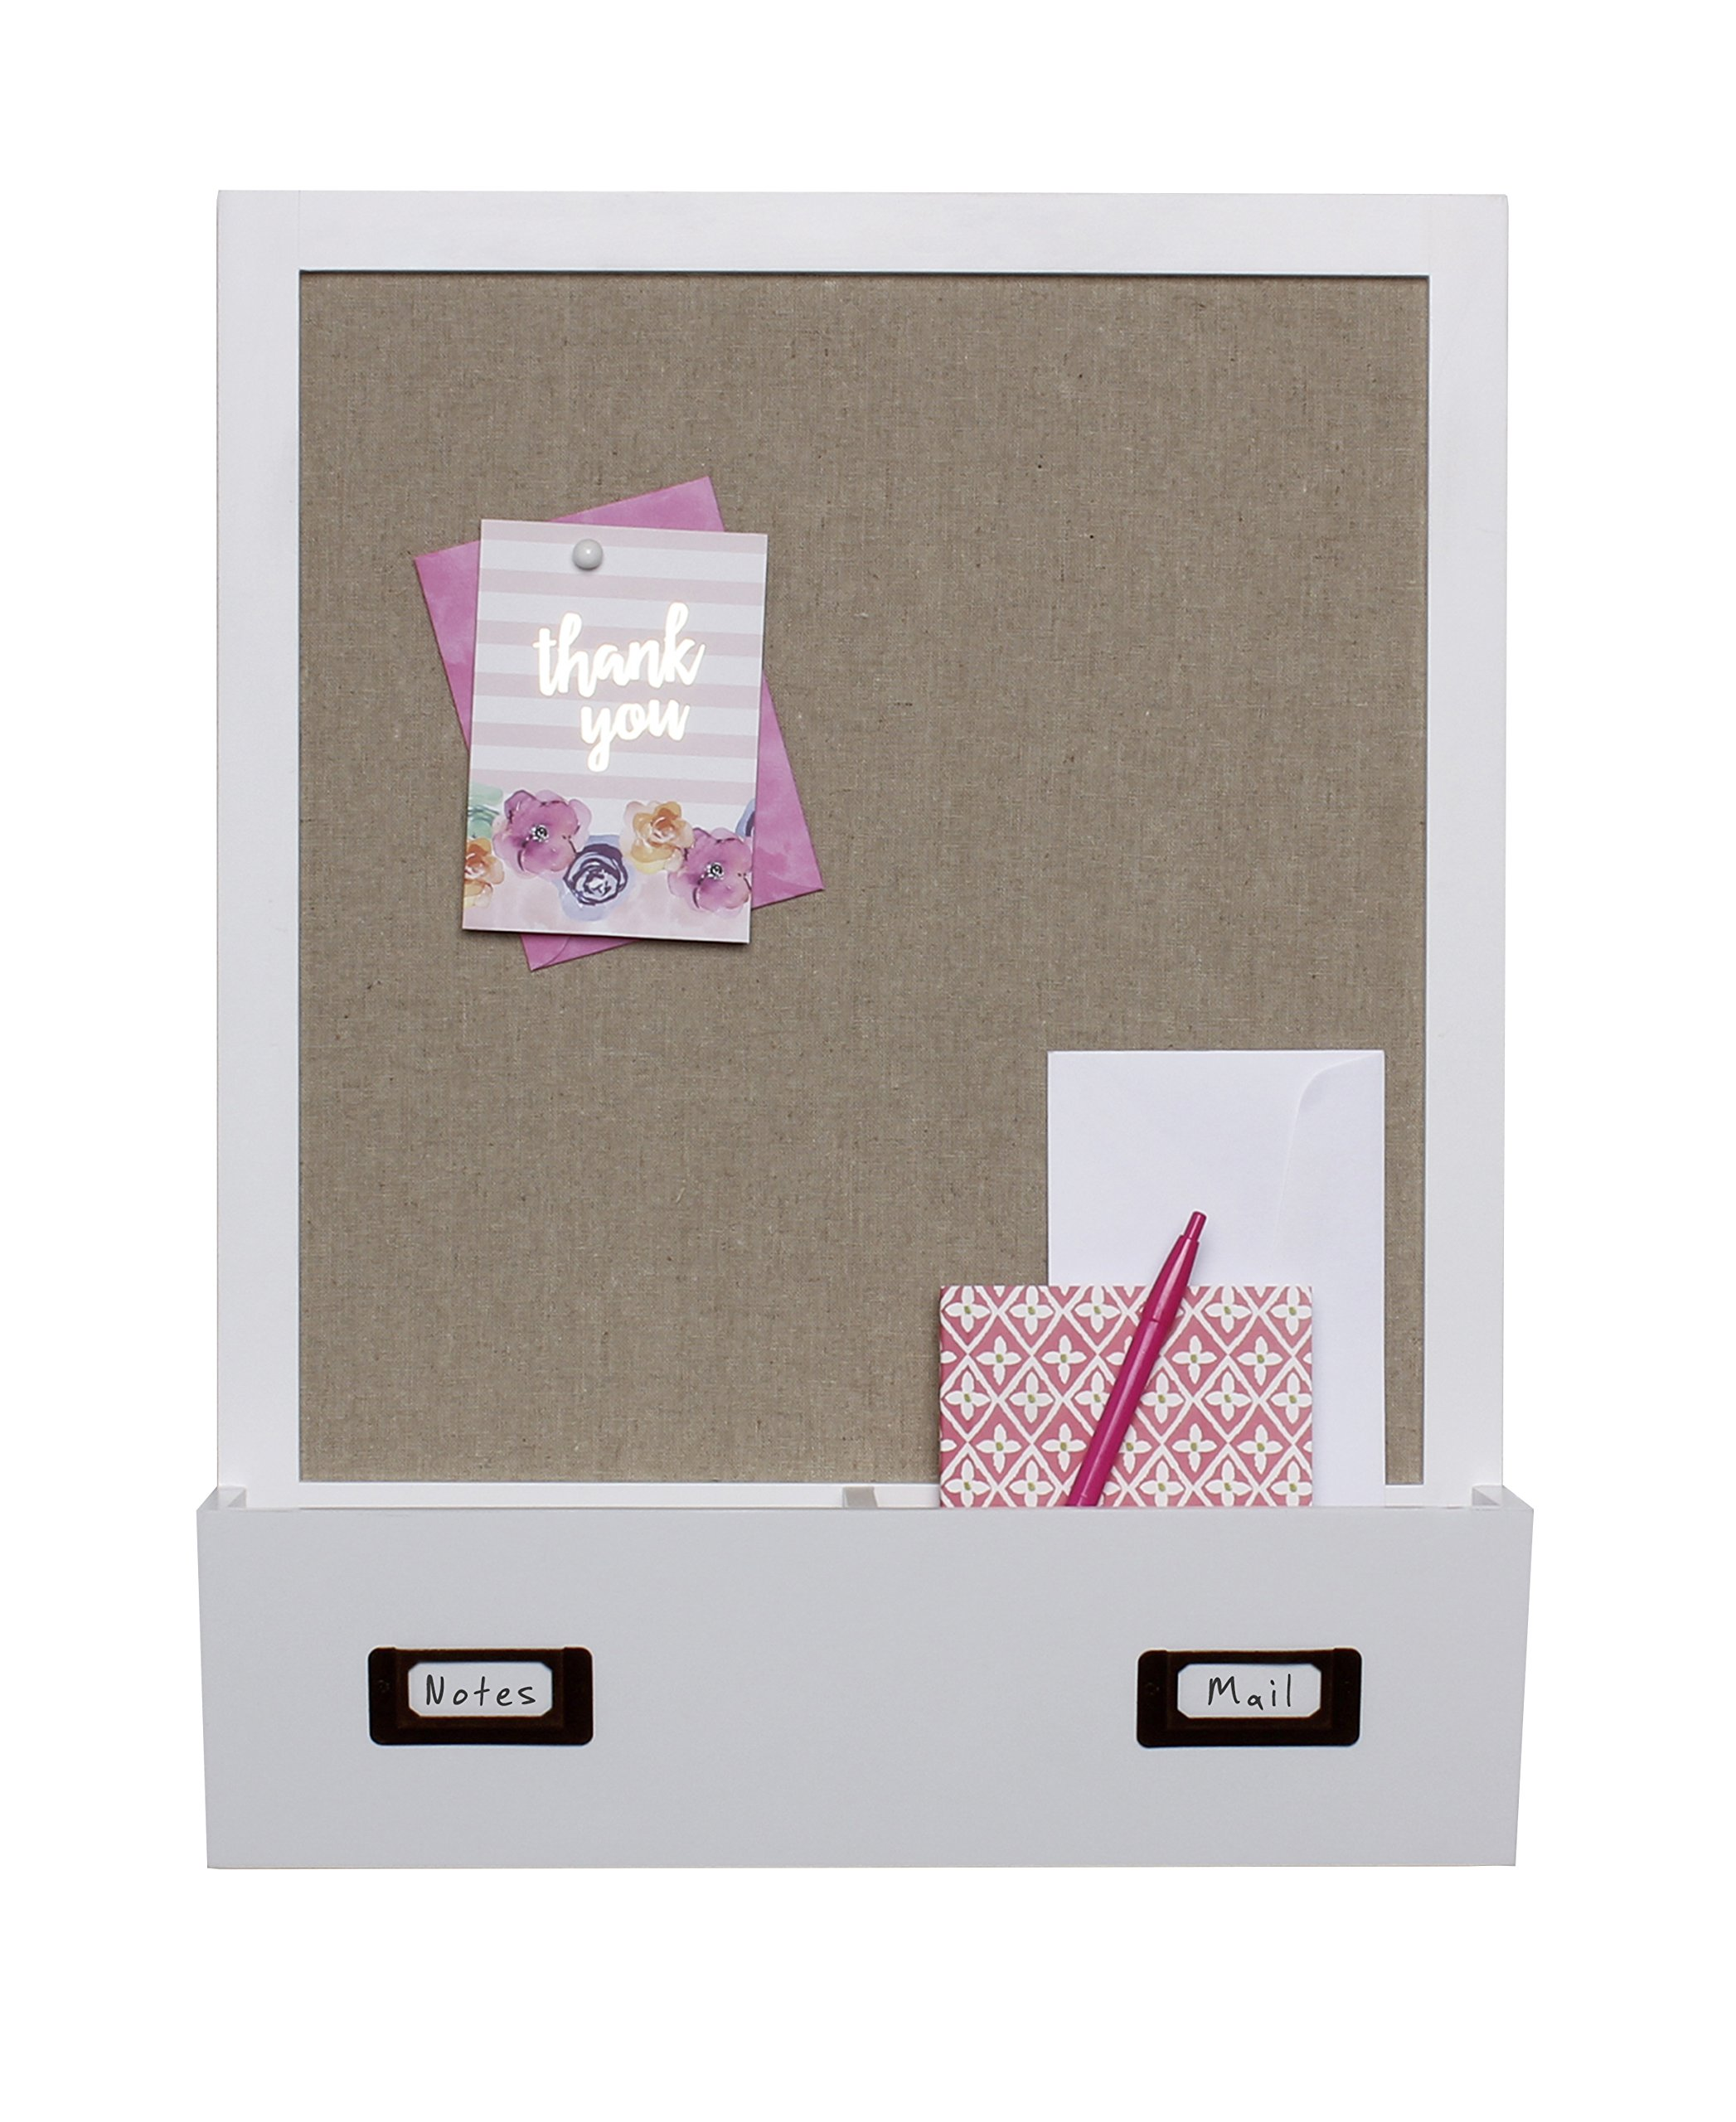 DesignOvation Decorative Wall Wood Home Organizer with Fabric Pin Board & Two Cubbies, White (209333) by DesignOvation